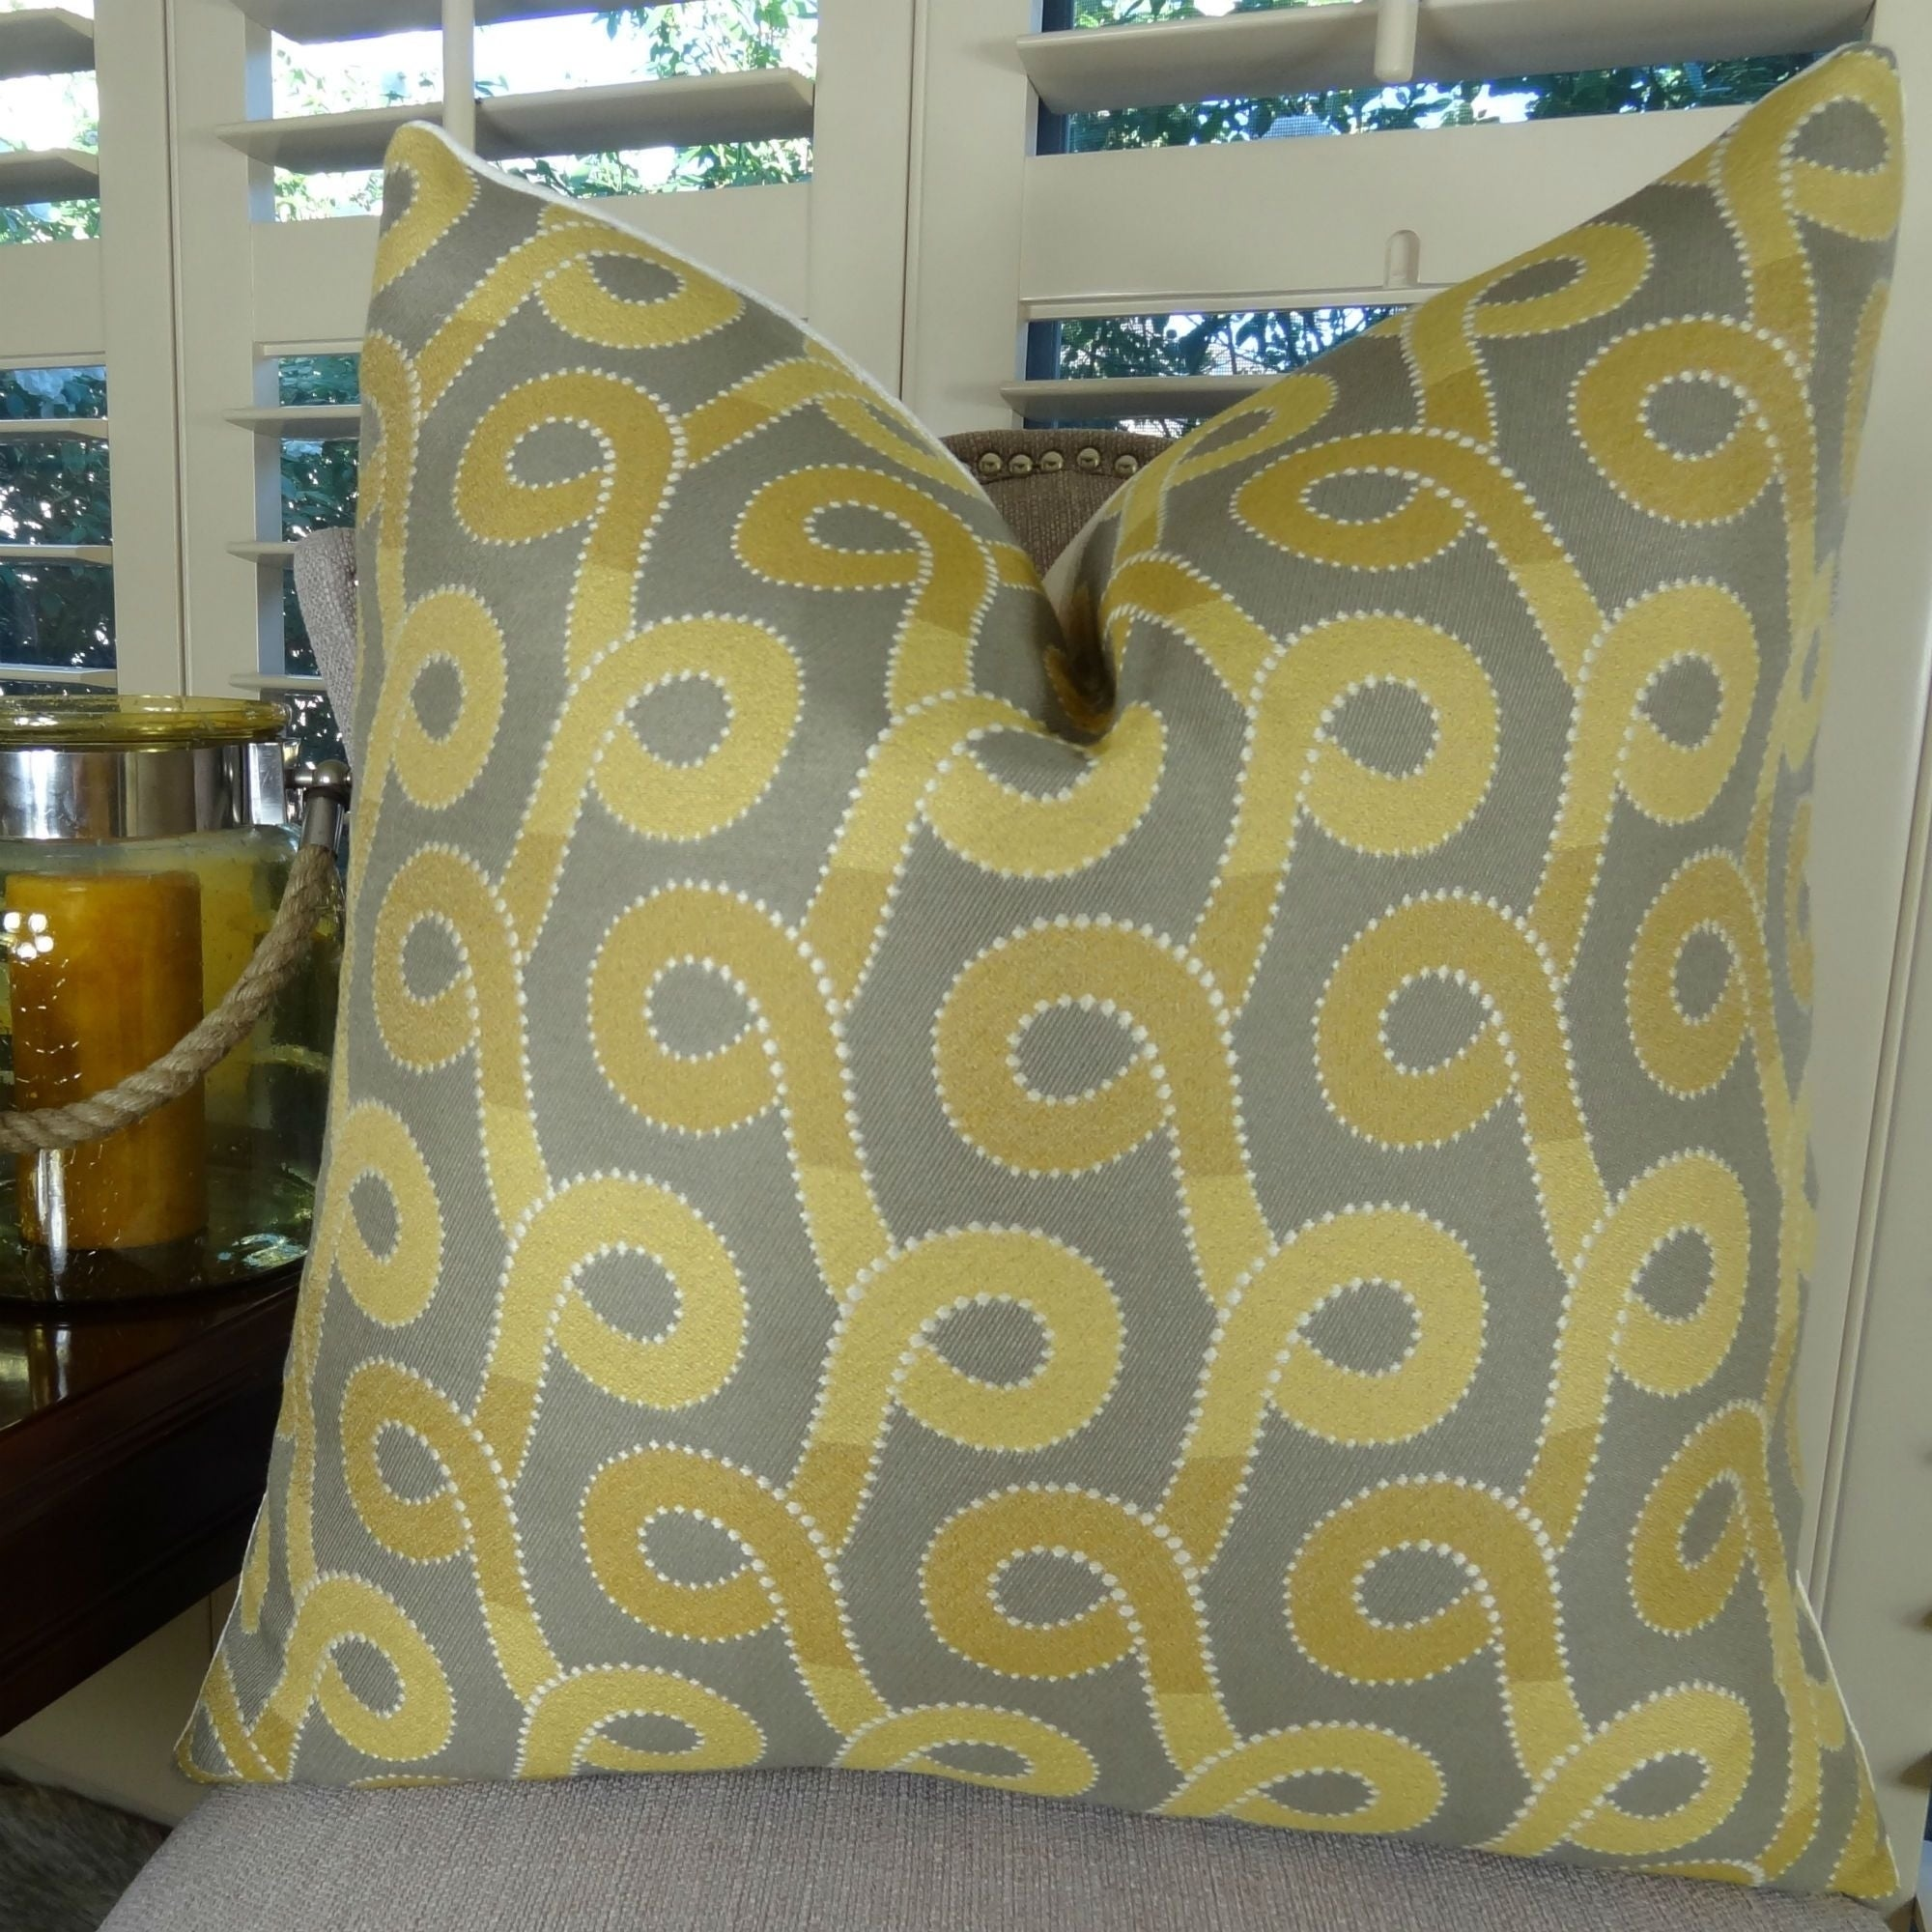 Thomas Collection Lemon Zest Gray Swirl Designer Luxury Couch Pillow, Handmade in USA, 11262D (Large - Square - double sided 20 x 20)